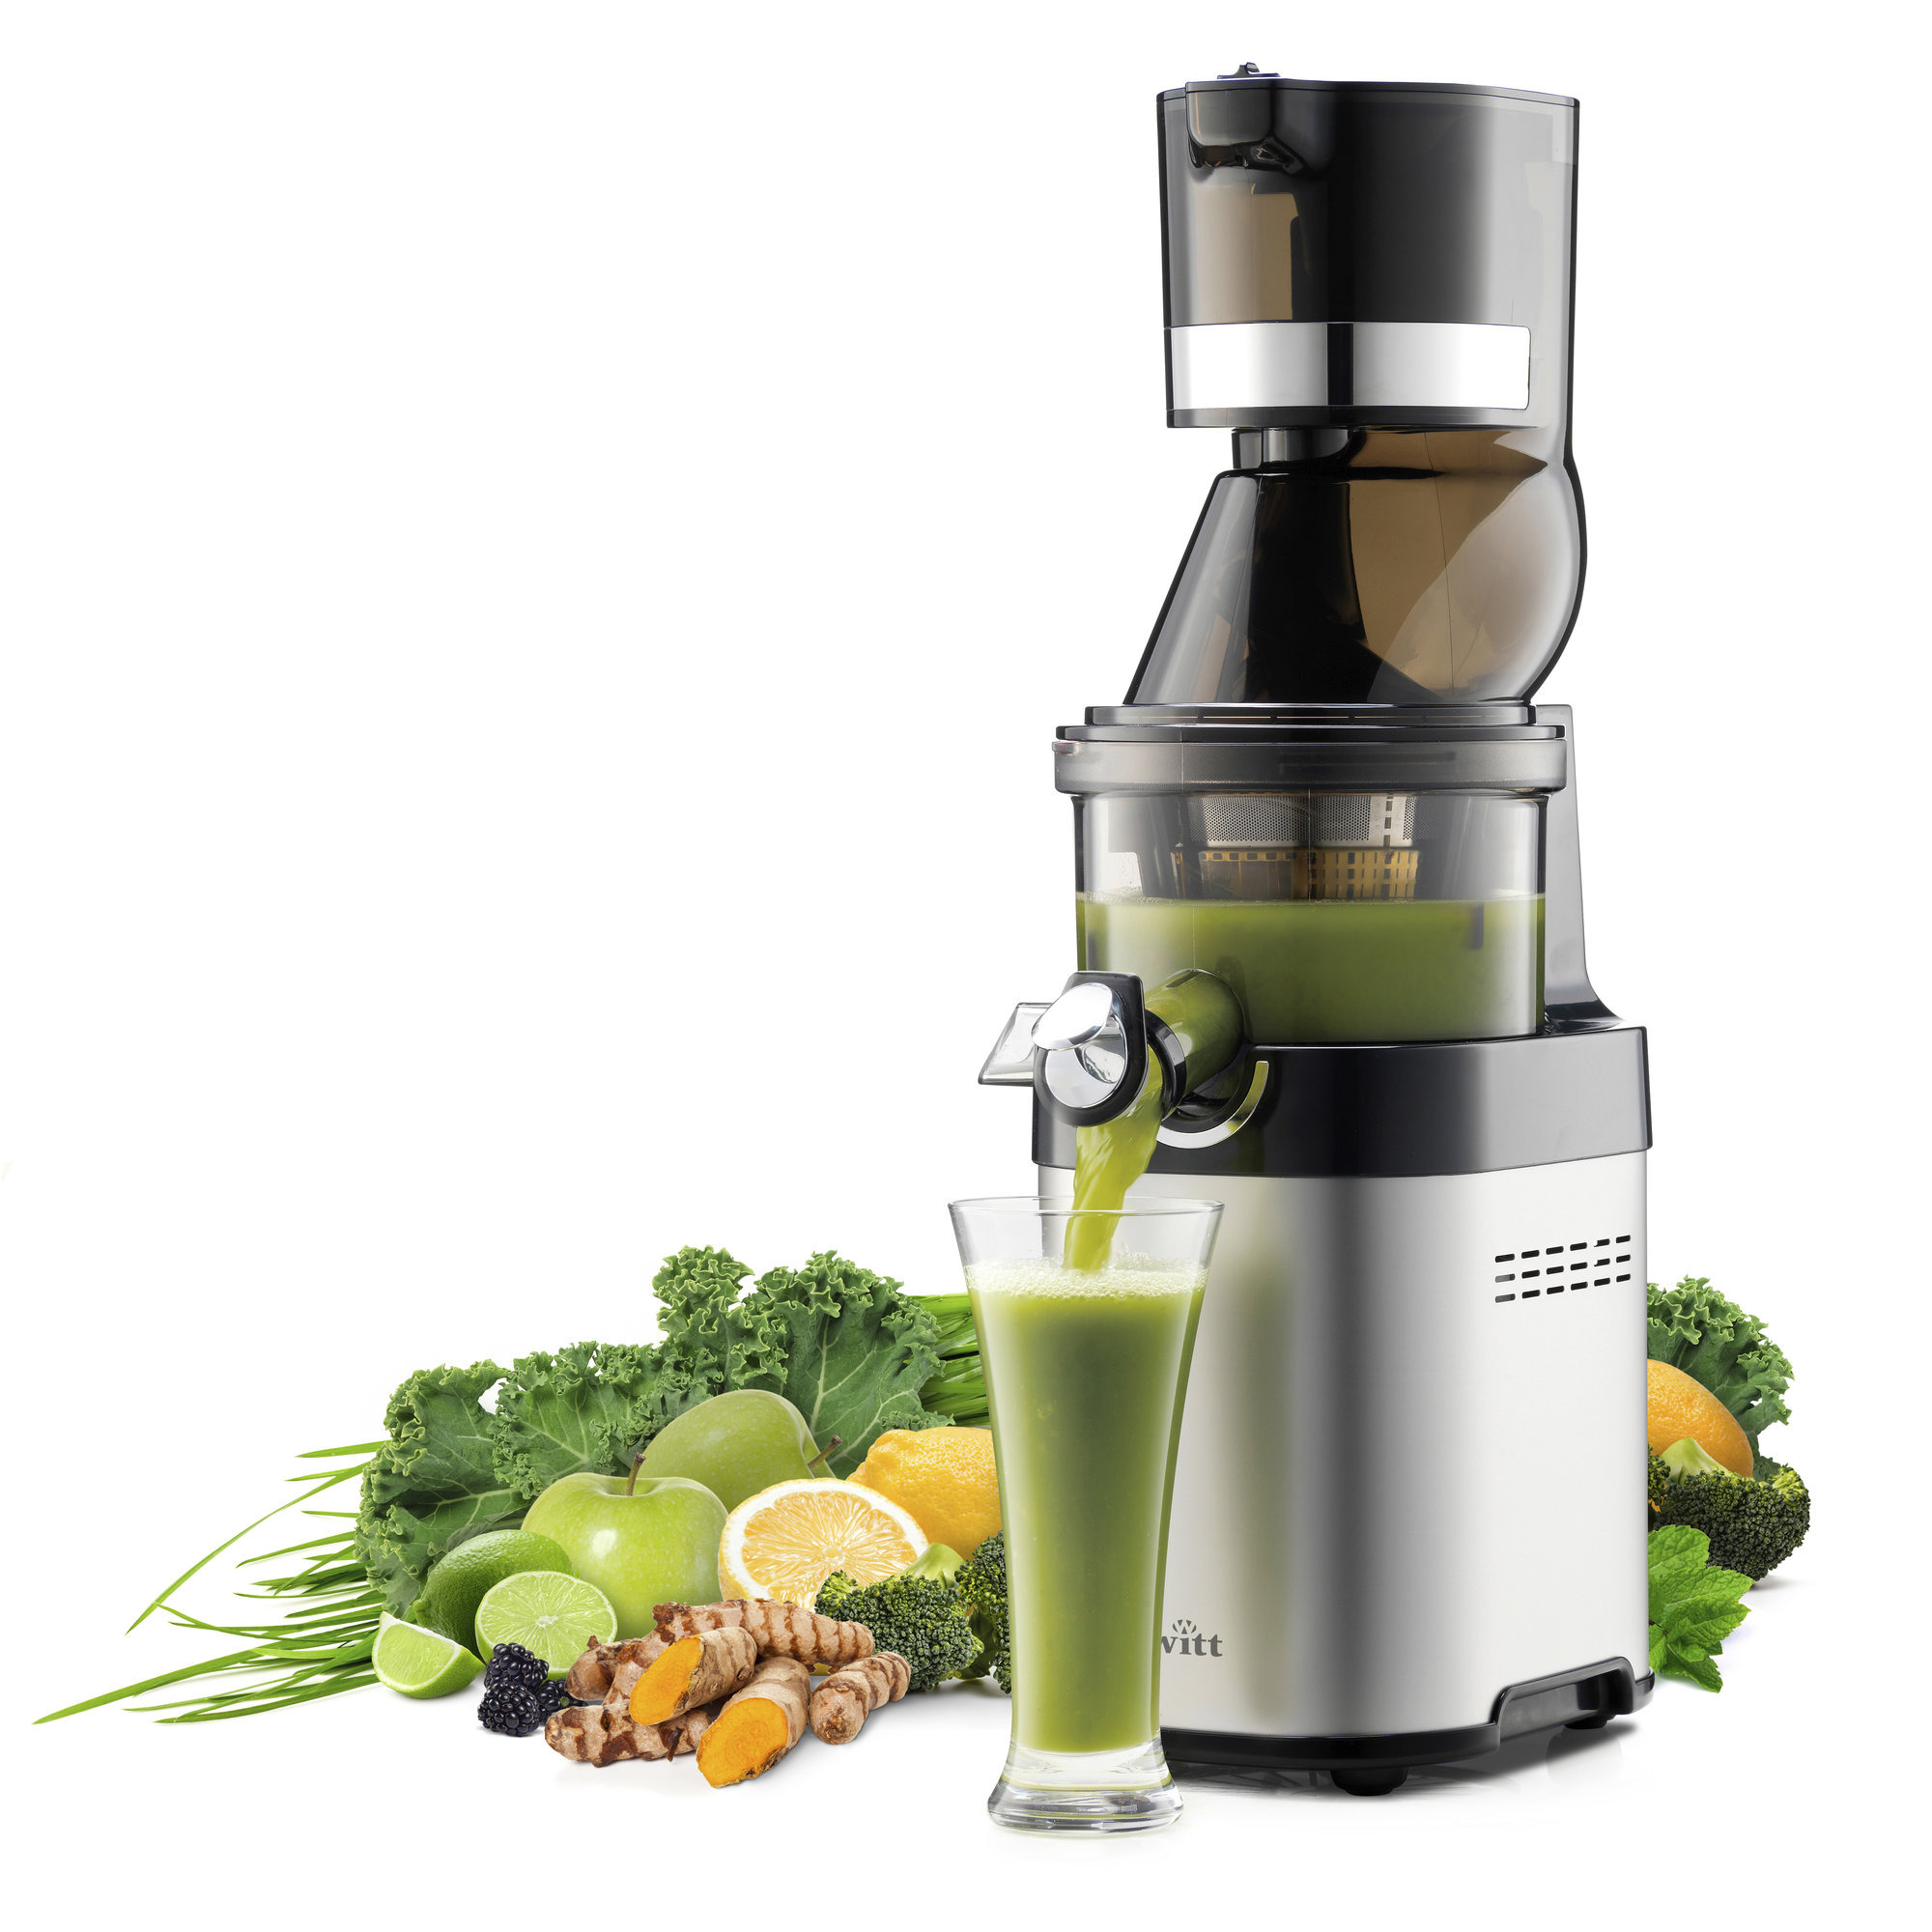 Slowjuicer Fra Witt : CS610 Pro Slow Juicer fra Witt by Kuvings Gratis Levering